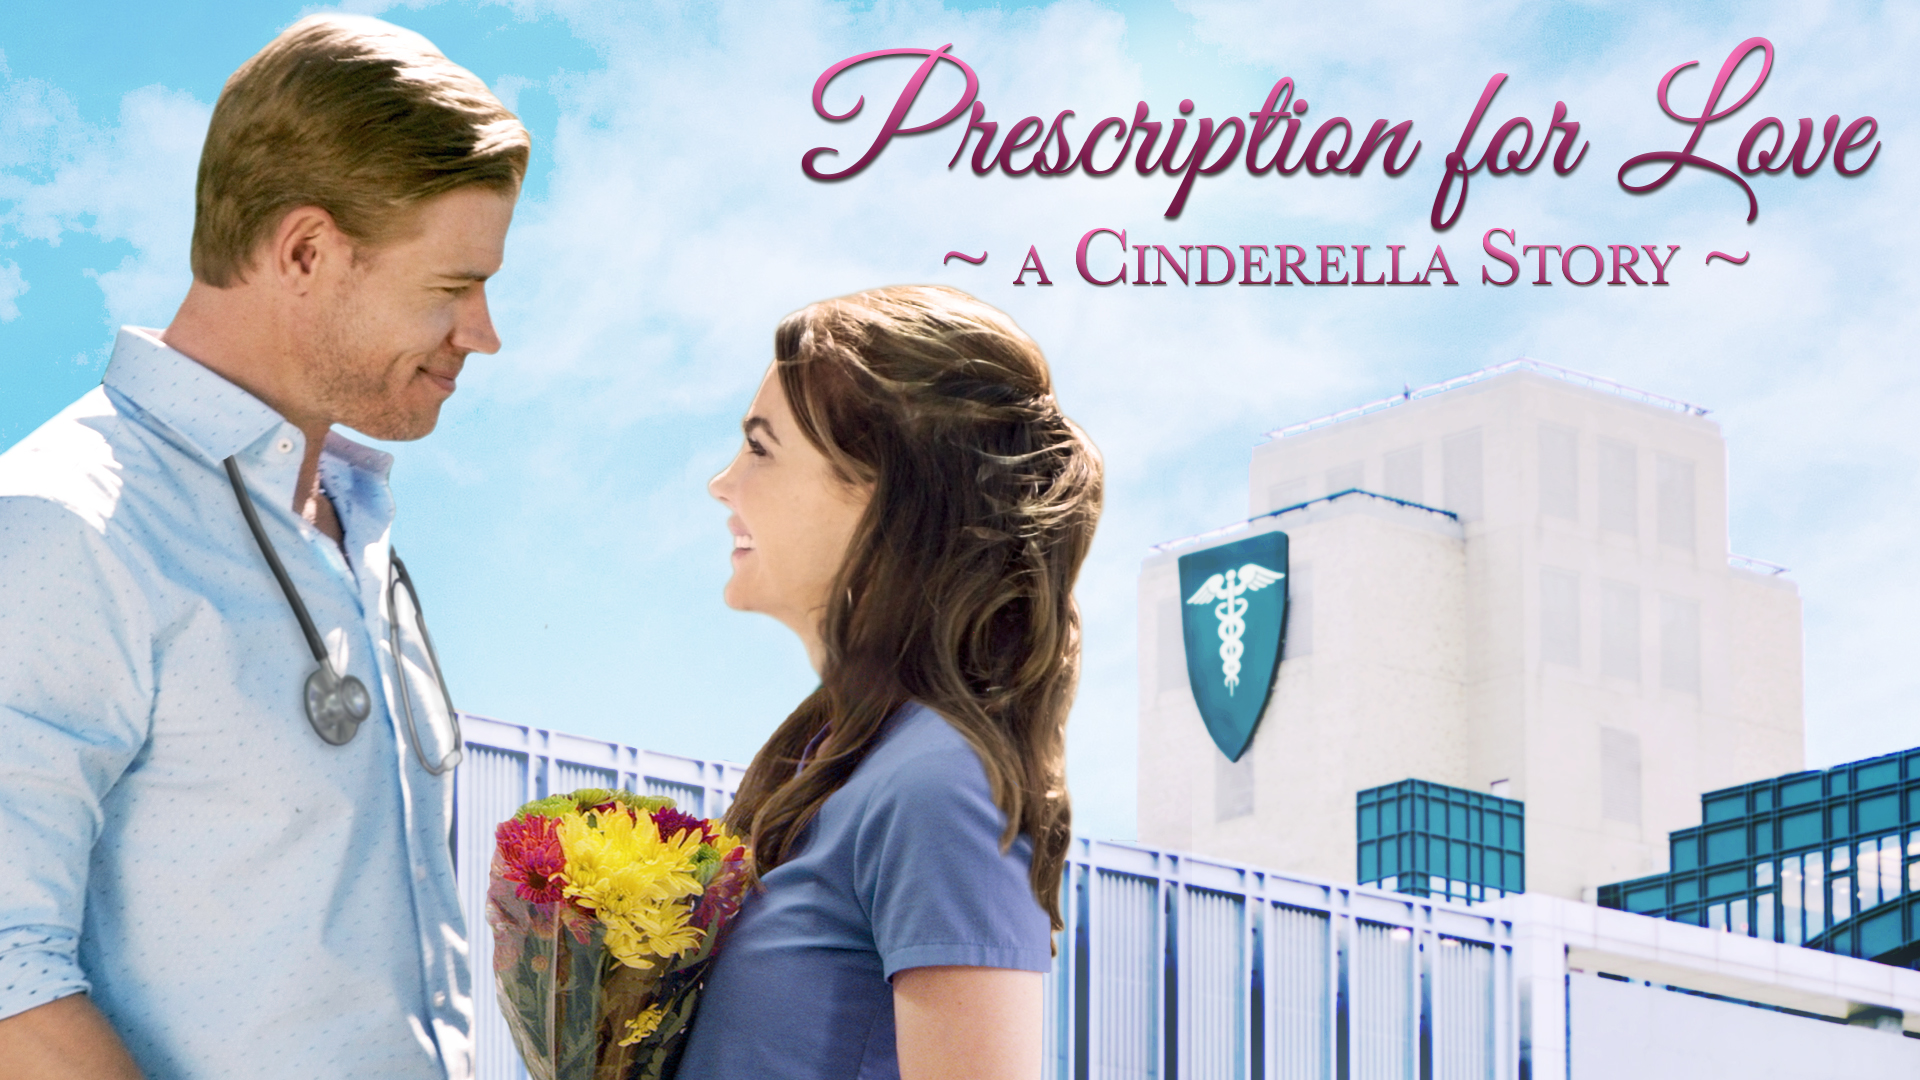 Prescription for Love